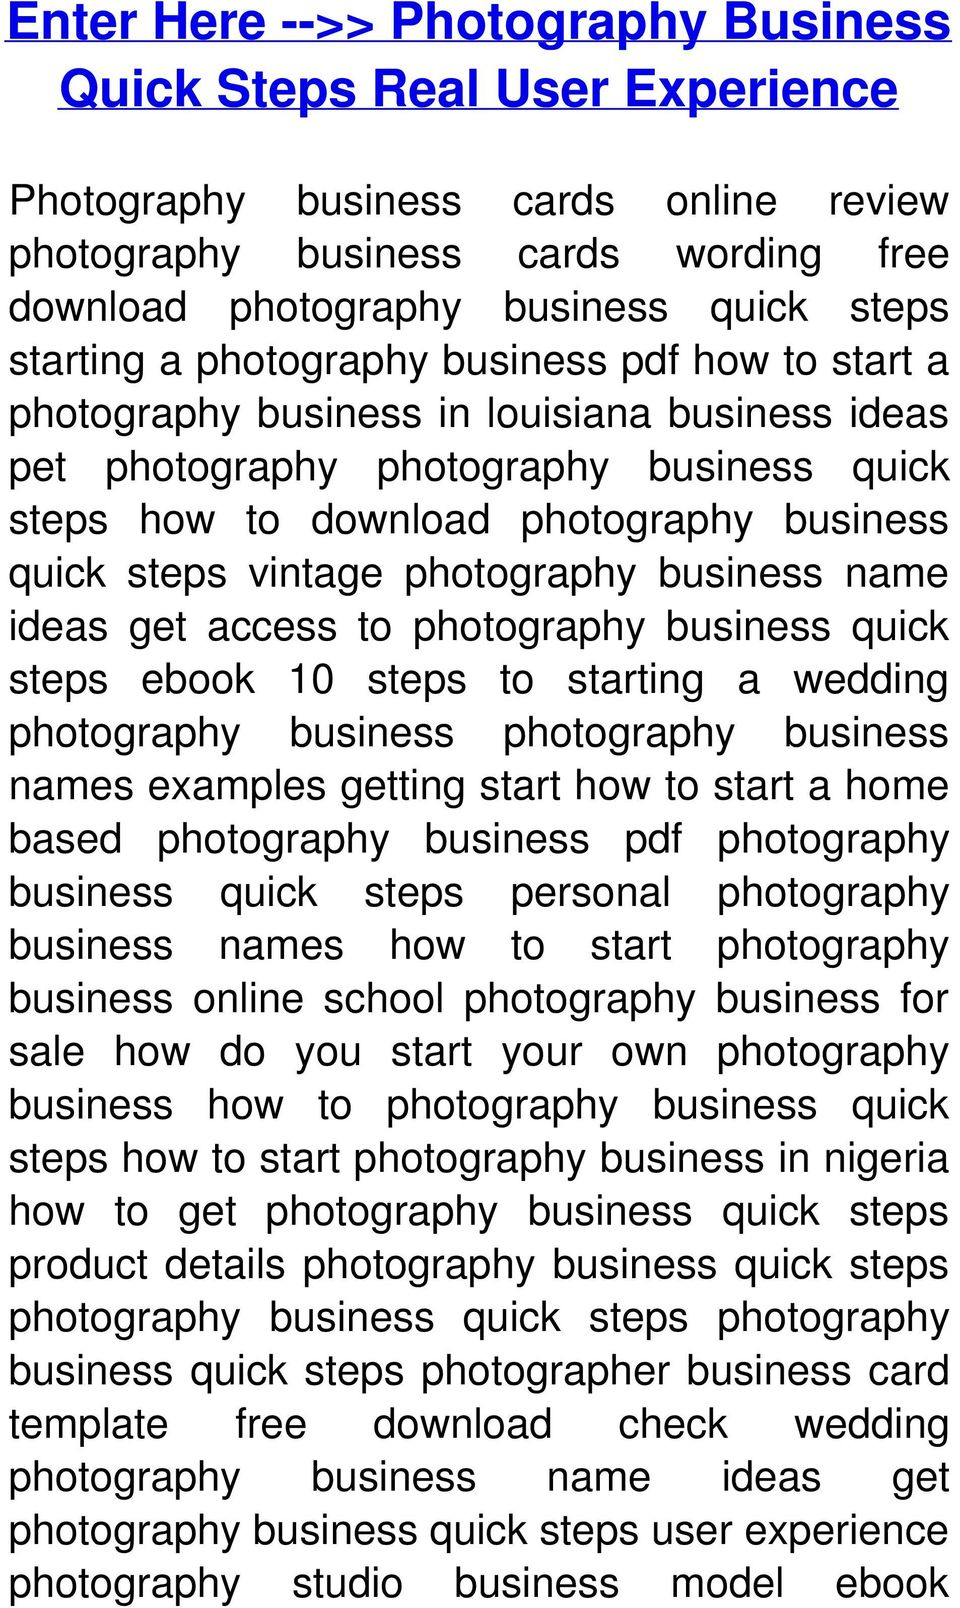 Enter Here Photography Business Quick Steps Get It Here Pdf Free Download